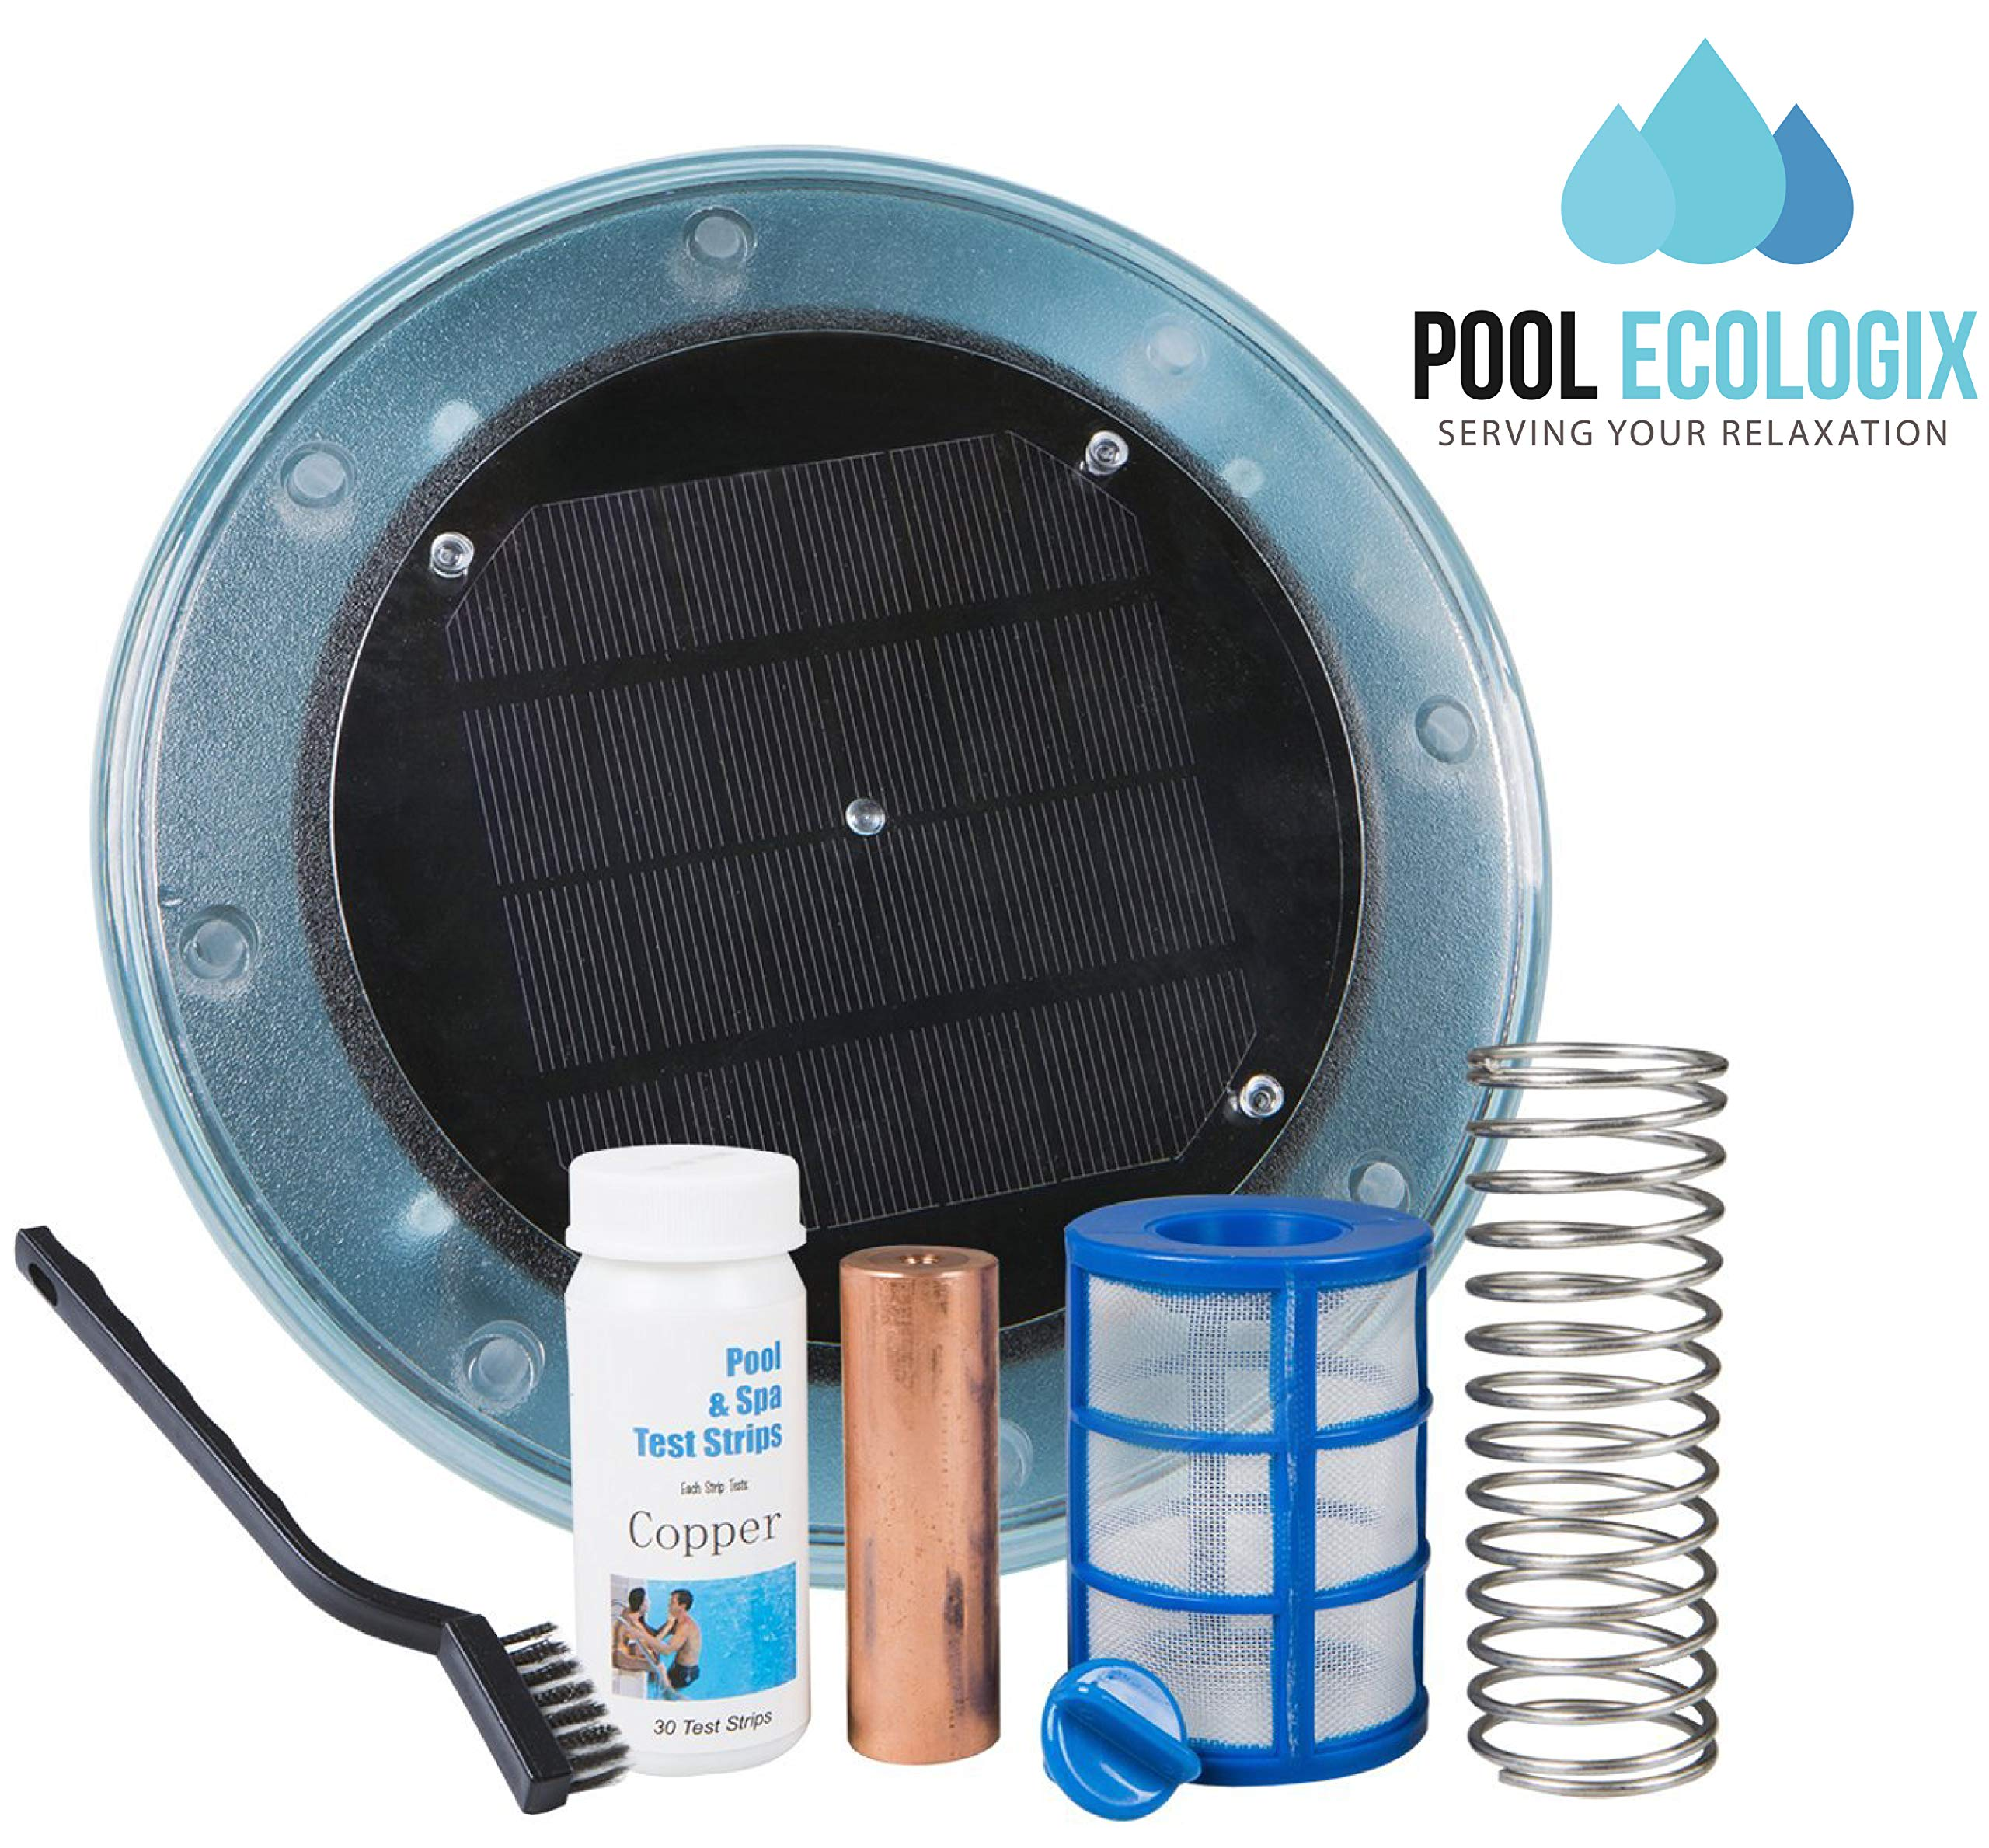 Pool Ecologix Solar Pool Ionizer | Floating Cleaner and Purifier with Copper Anode | Keeps Water Crystal Clear and Free of Algae | Chlorine Free and Eco-Friendly | Fresh and Salt Water Compatible by Pool Ecologix